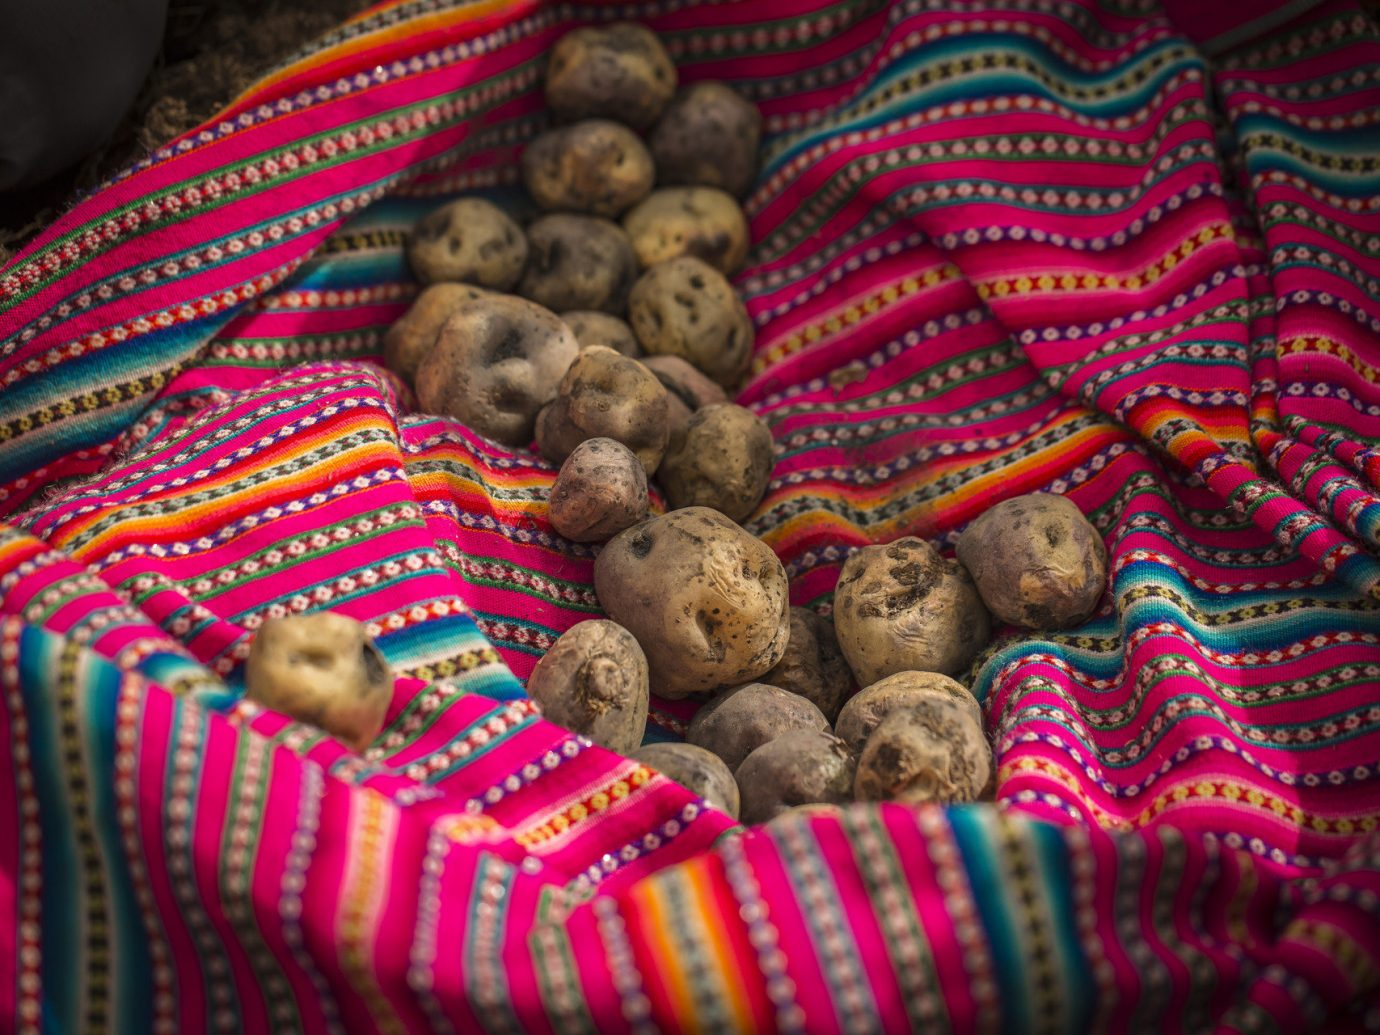 Eat food local eats potatoes textiles Travel Tips vegetables color red indoor different flower bazaar Christmas produce colorful sweetness line colored several